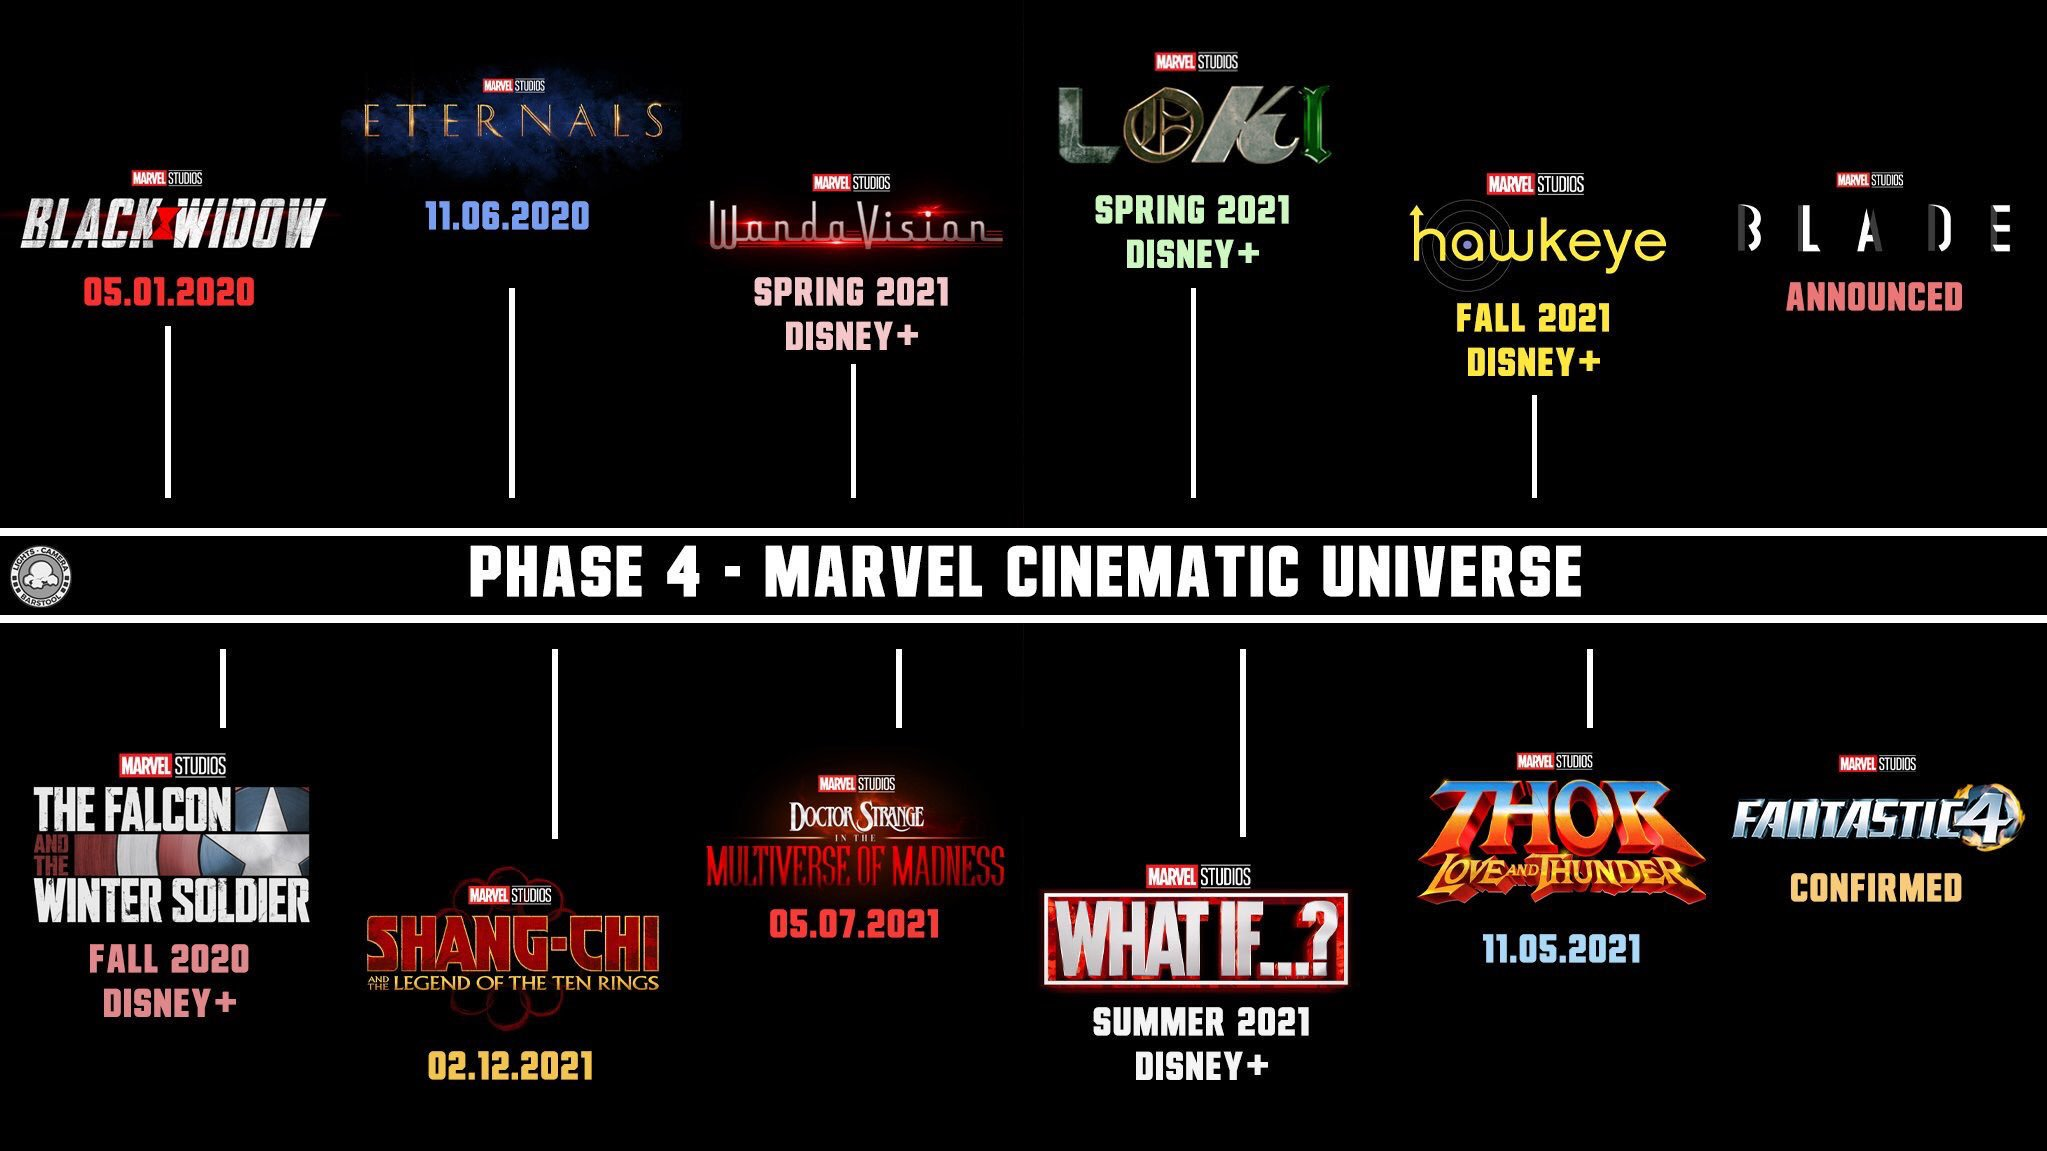 MCU Marvel Cinematic Univers Phase 4